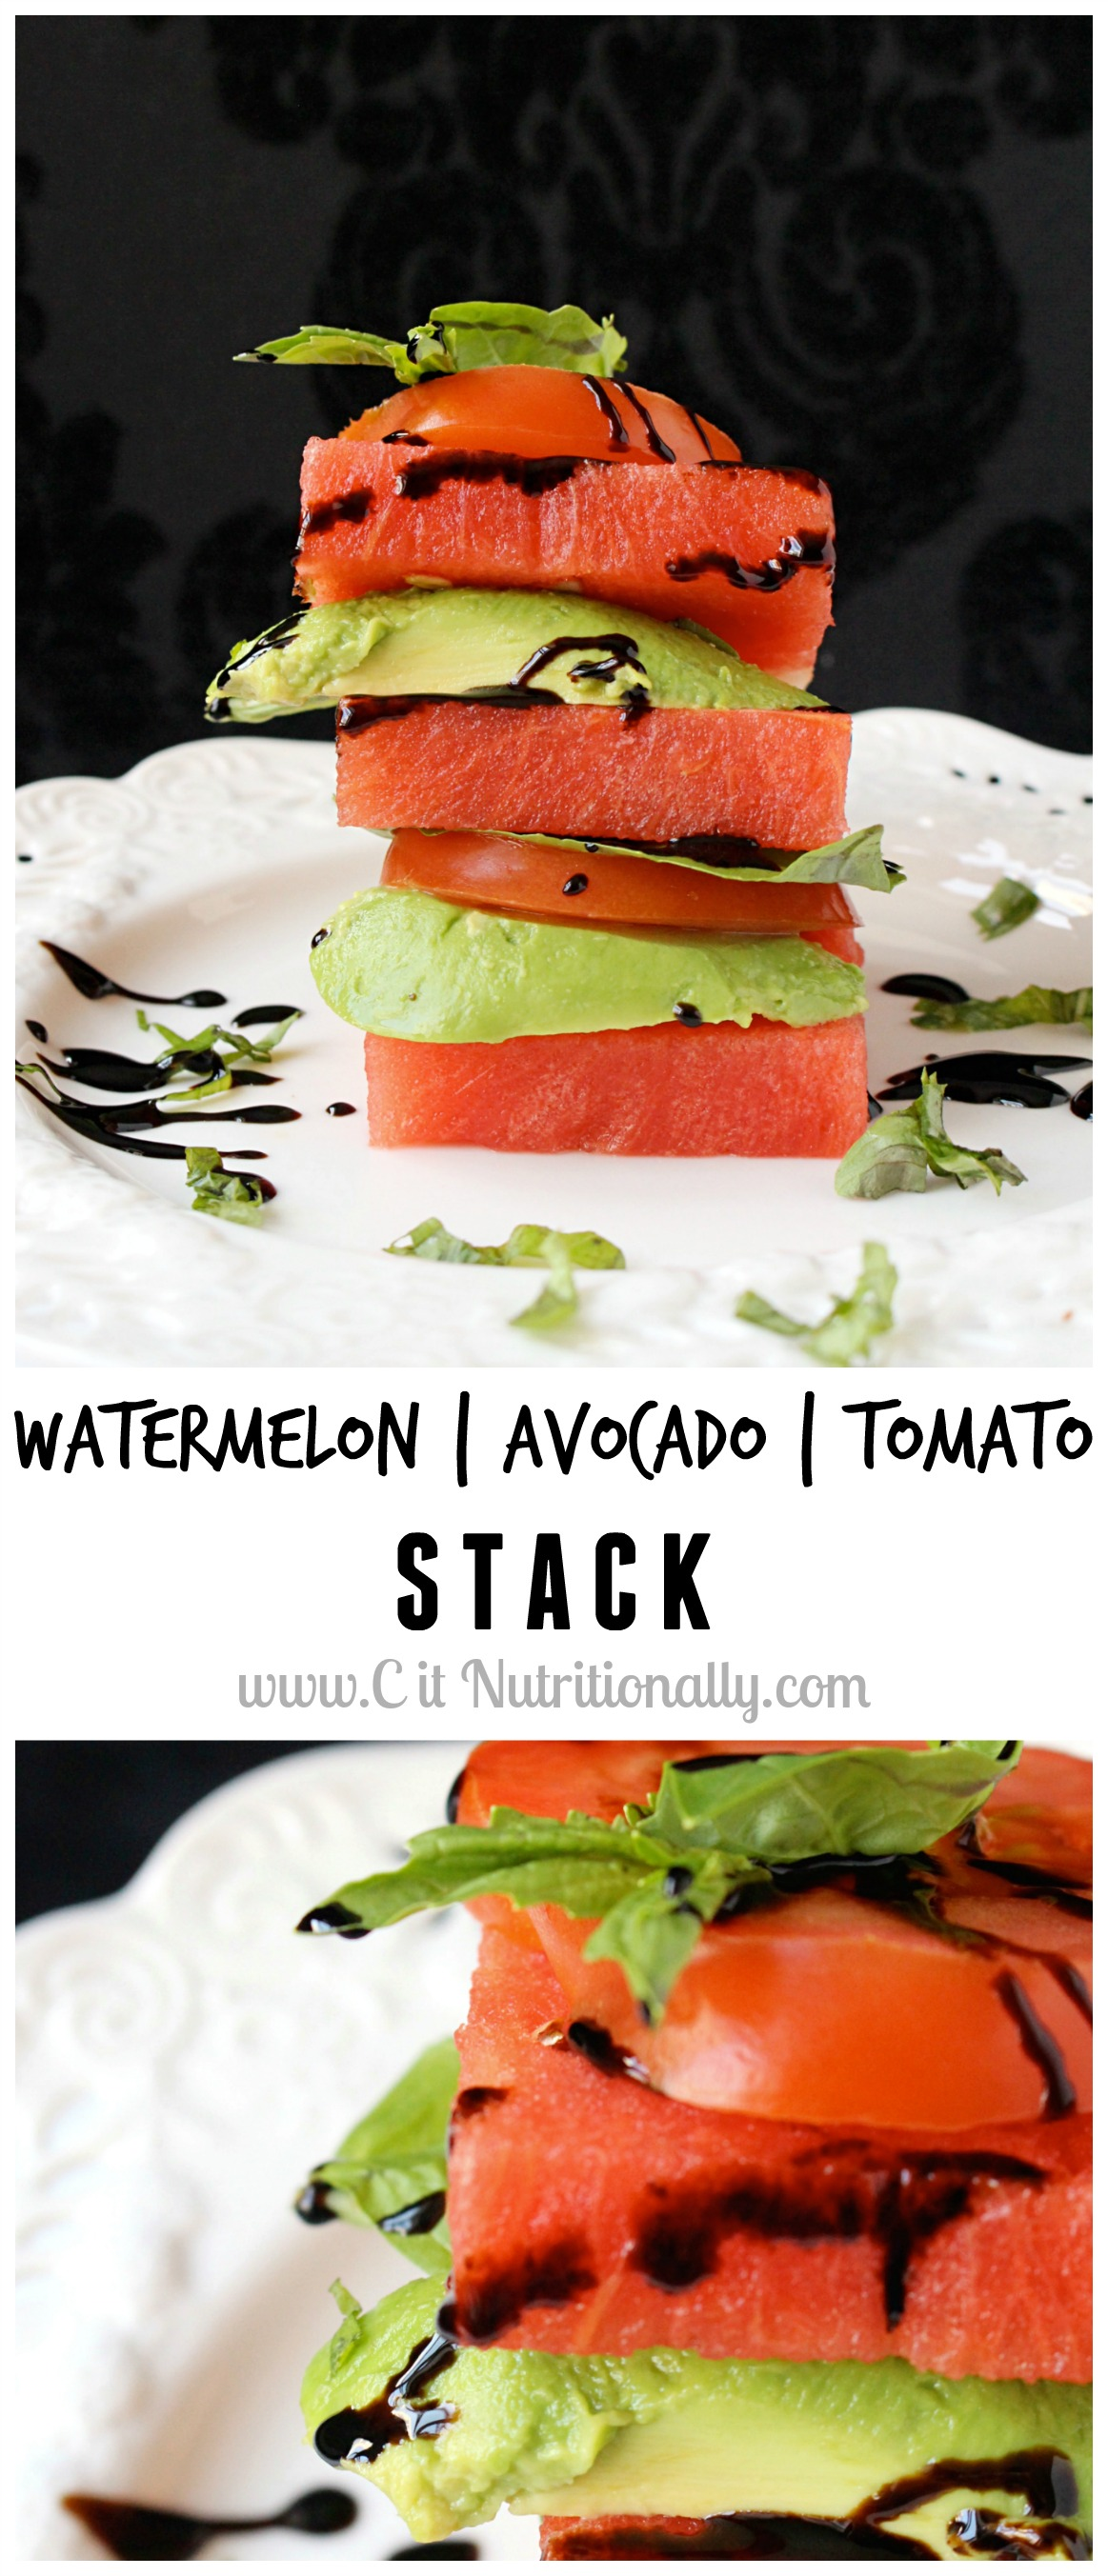 Watermelon Avocado Tomato Stack | C it Nutritionally